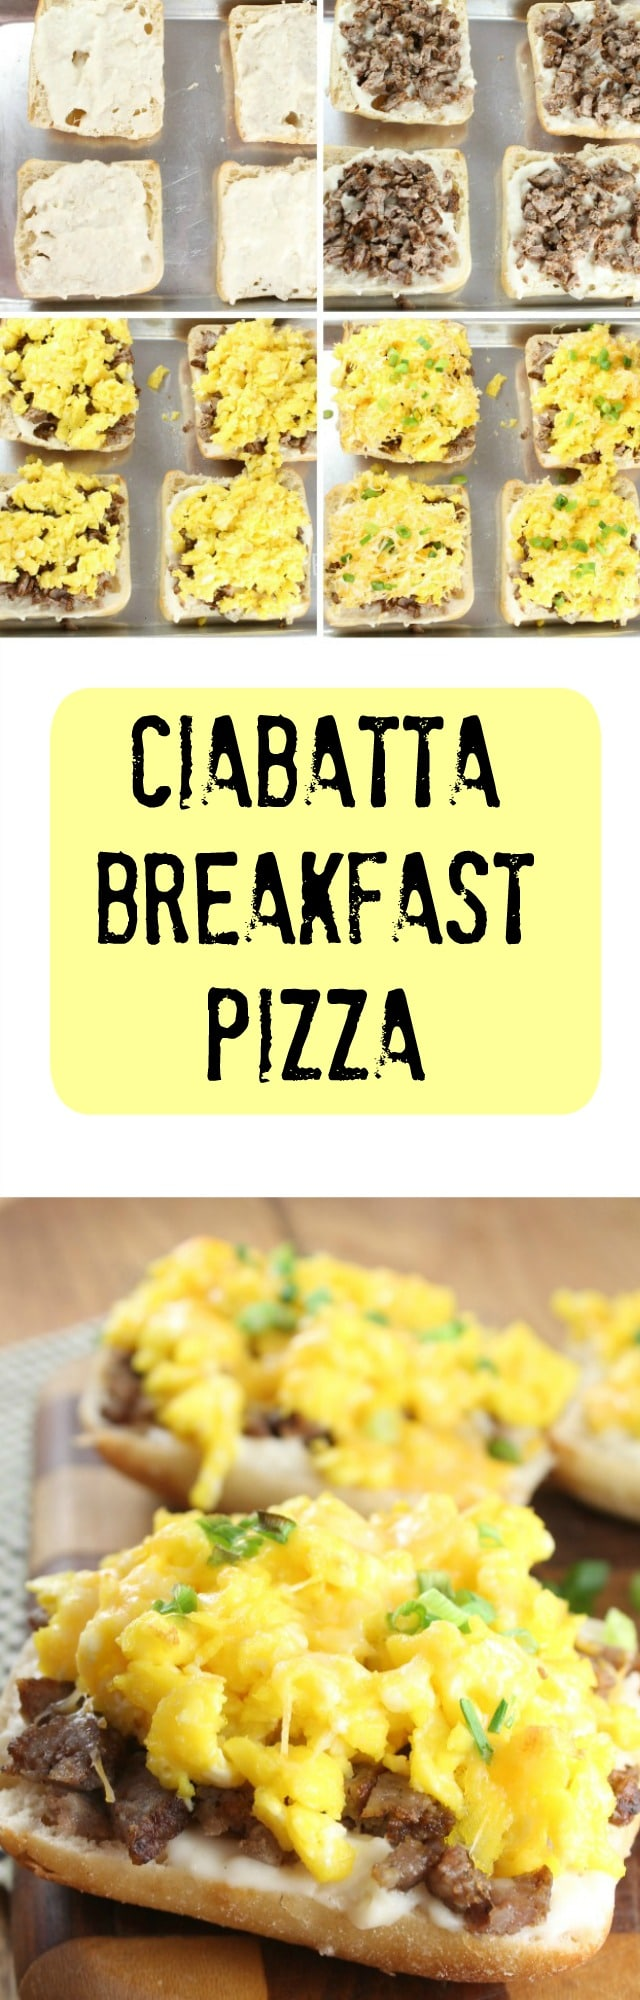 Ciabatta Breakfast Pizza is a filling a delicious meal for anytime of day. Made with Blue Sky Family Farms Free Range Eggs. Find the recipe at MissintheKitchen.com #sponsored